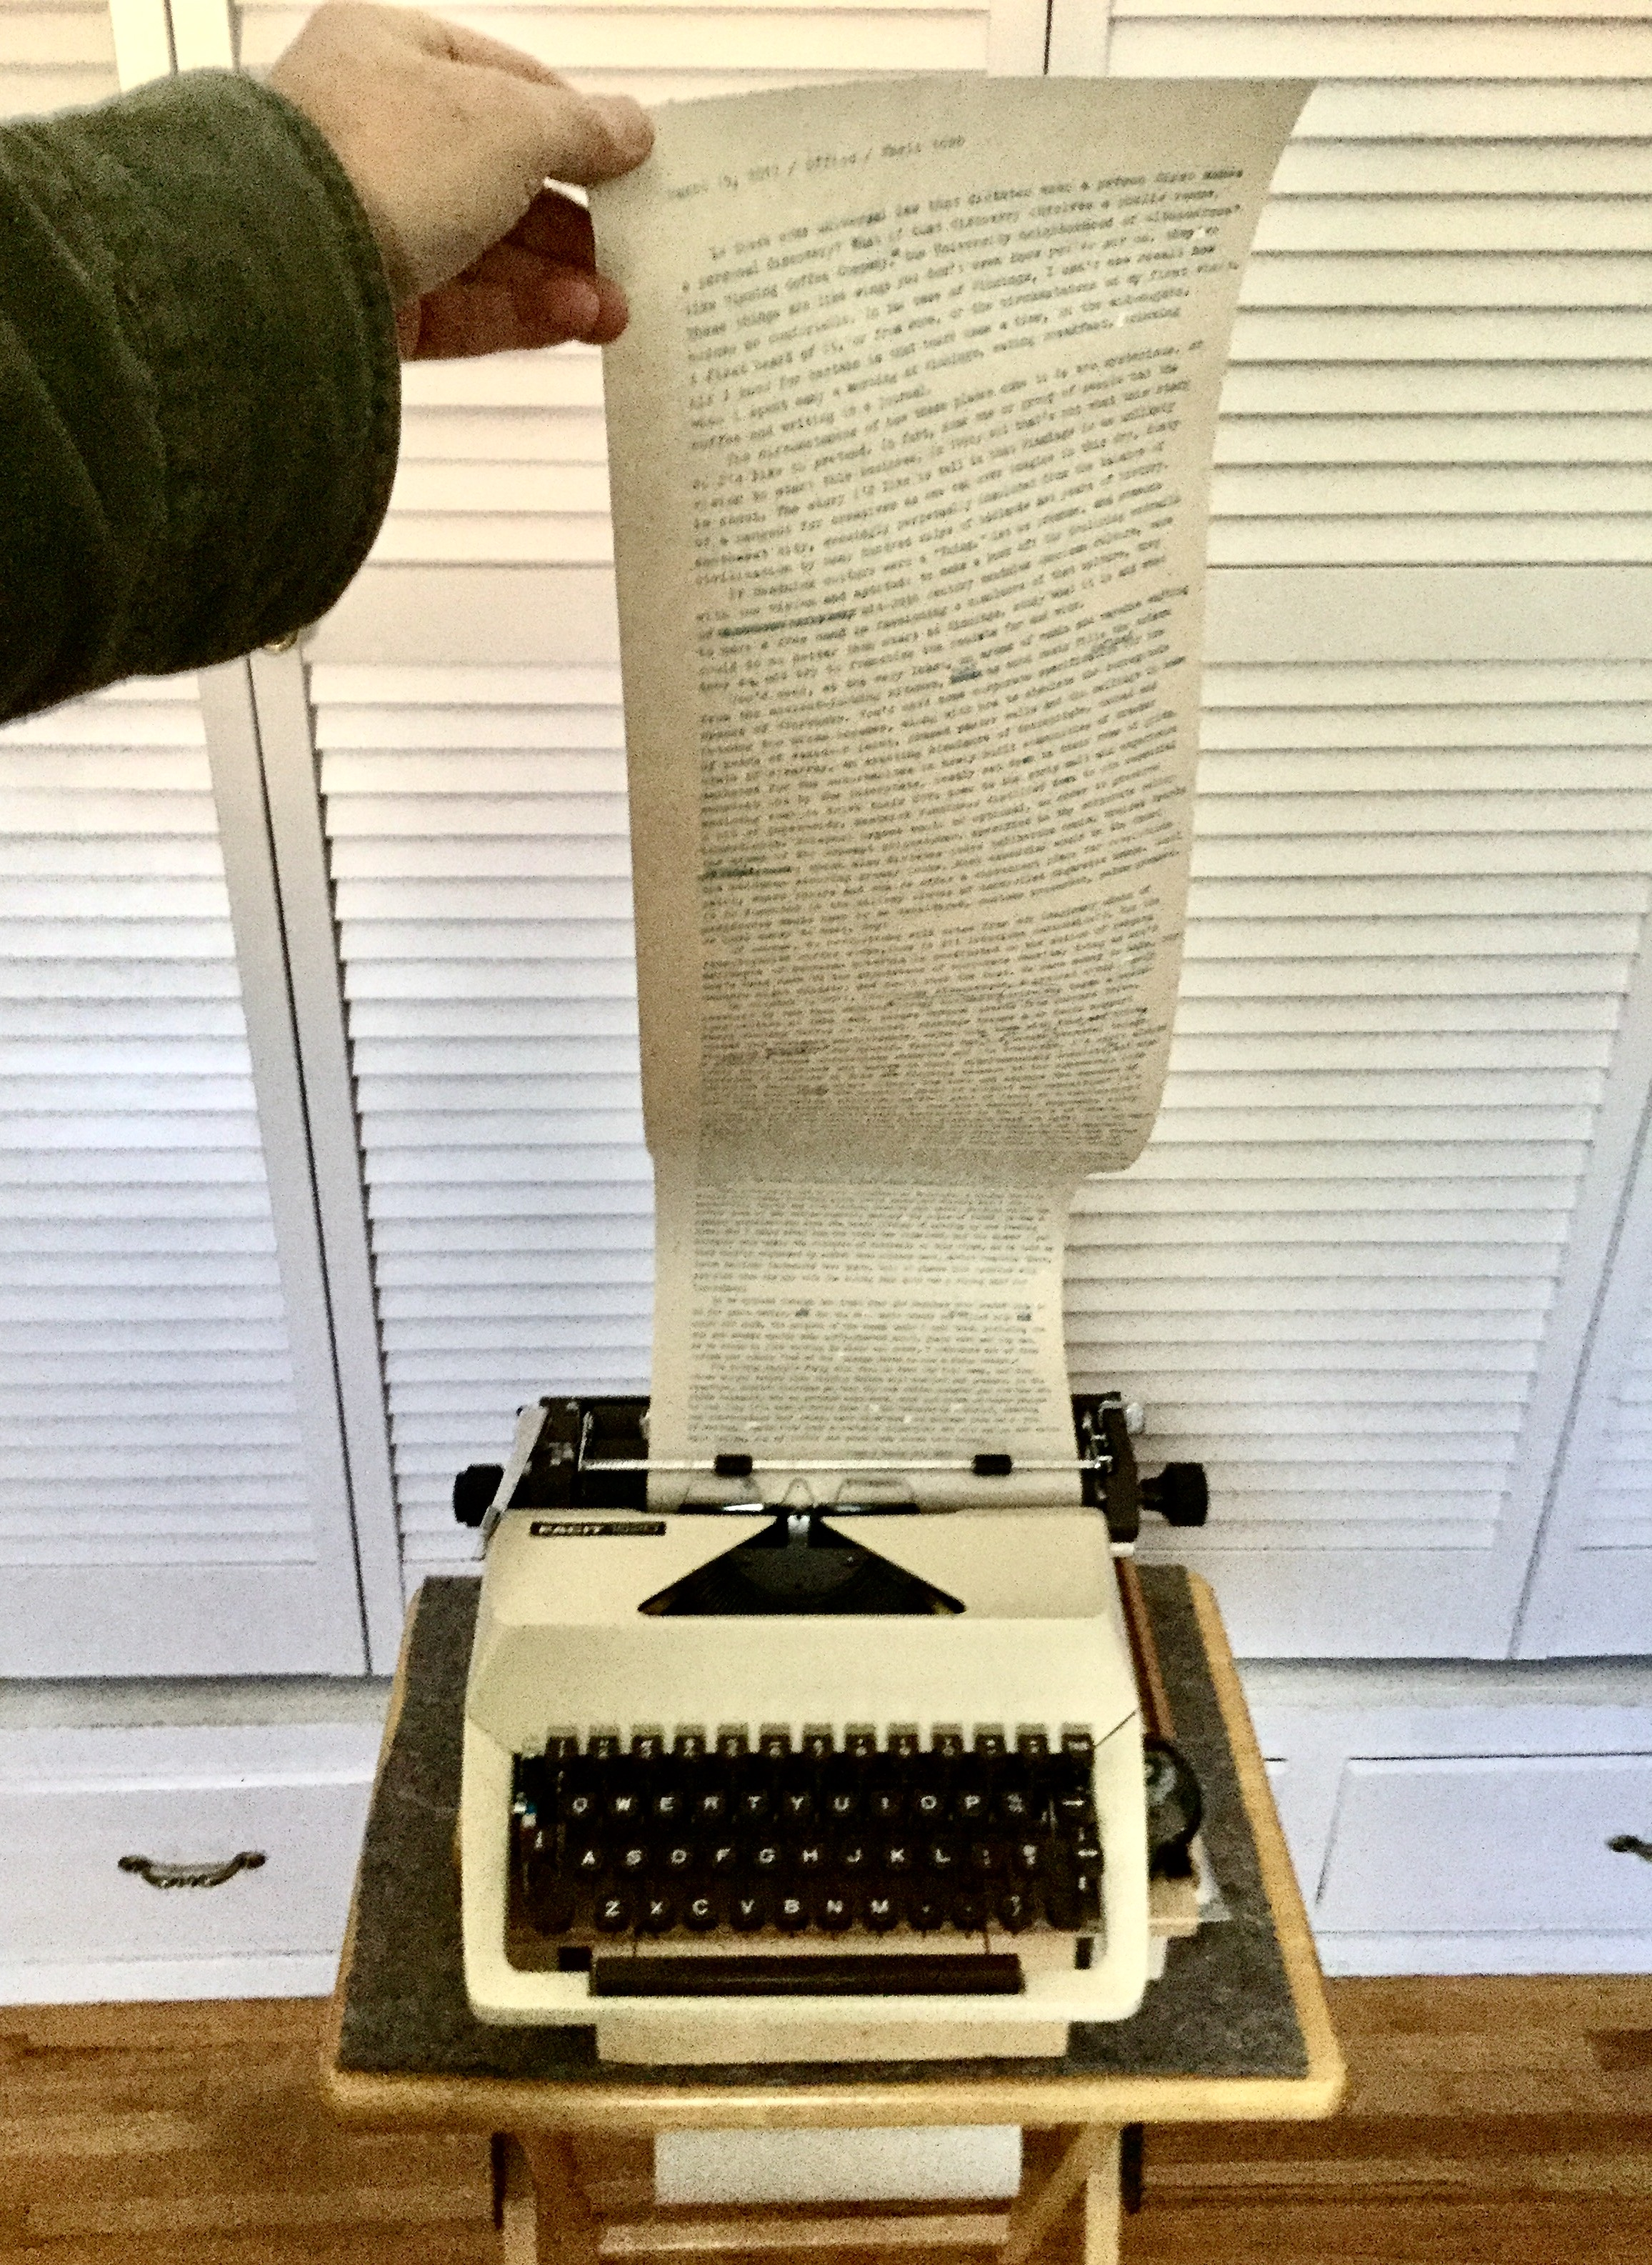 'Personal Discoveries' Rough Draft, Facit 1620 and Teletype Roll